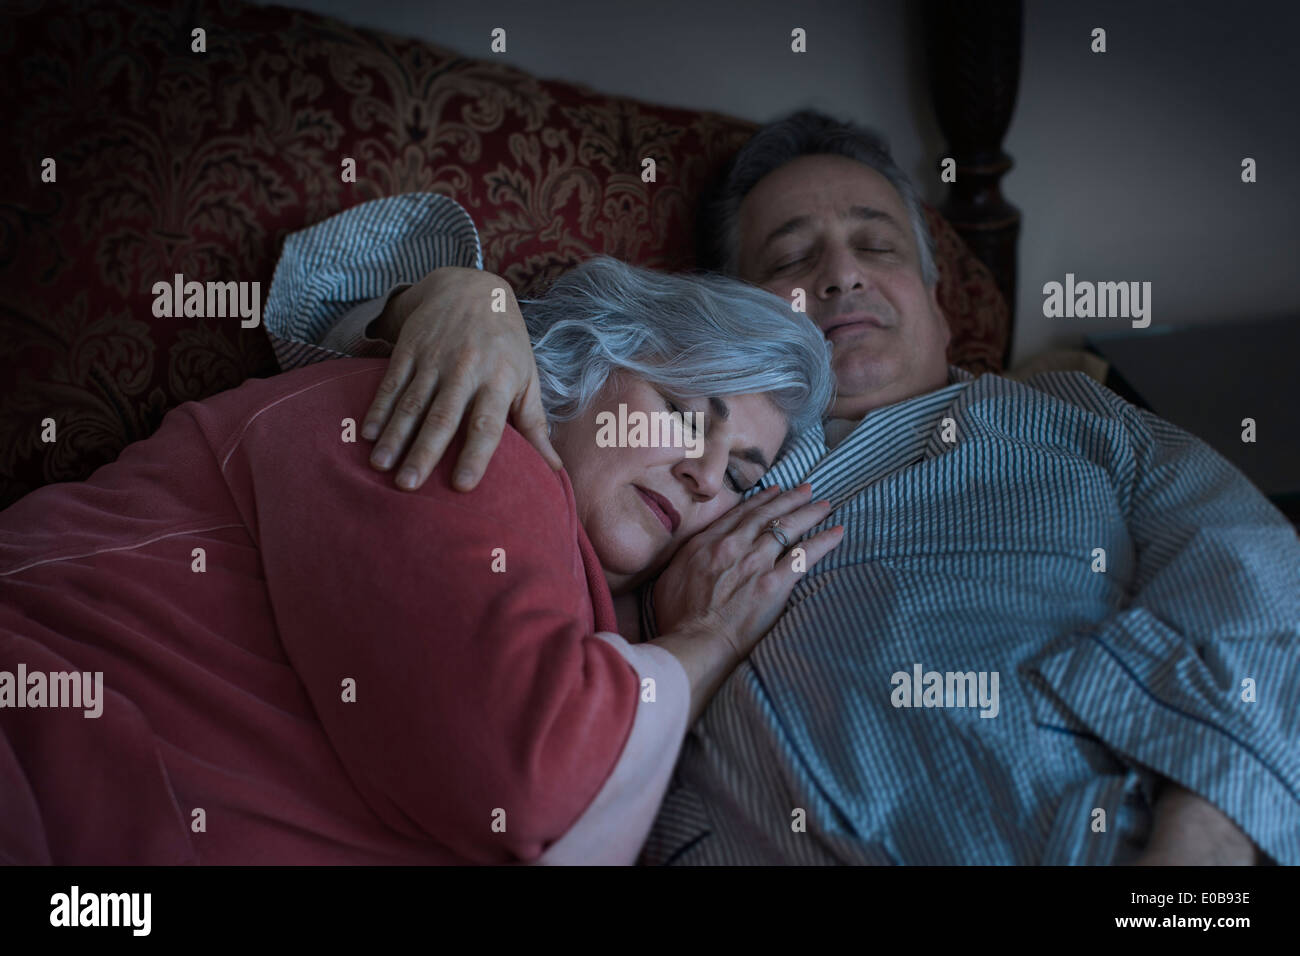 Affectionate mature adult couple sleeping on bed - Stock Image